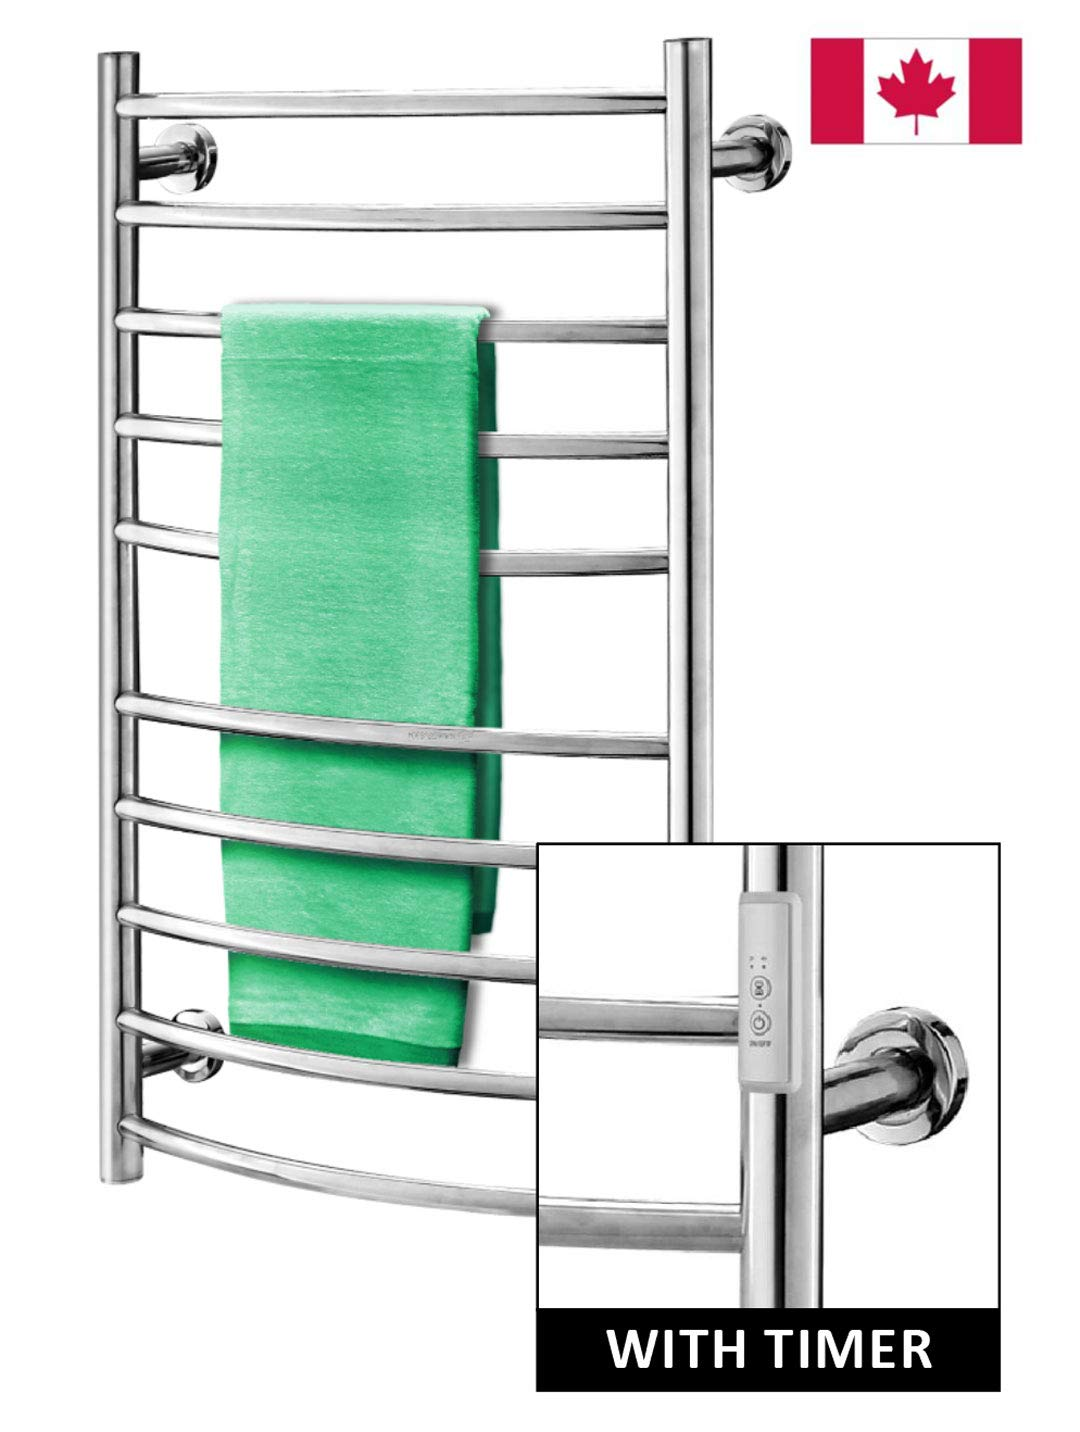 Towel Warmer | Built-in Timer with Led Indicators | 3 Timer Modes: ON/Off, 2 H, 4 H | Both Hard-Wired & Plug-in Options Included| Wall Mounted | 10 Curved Bars | High Polish Chrome Stainless Steel by Odass